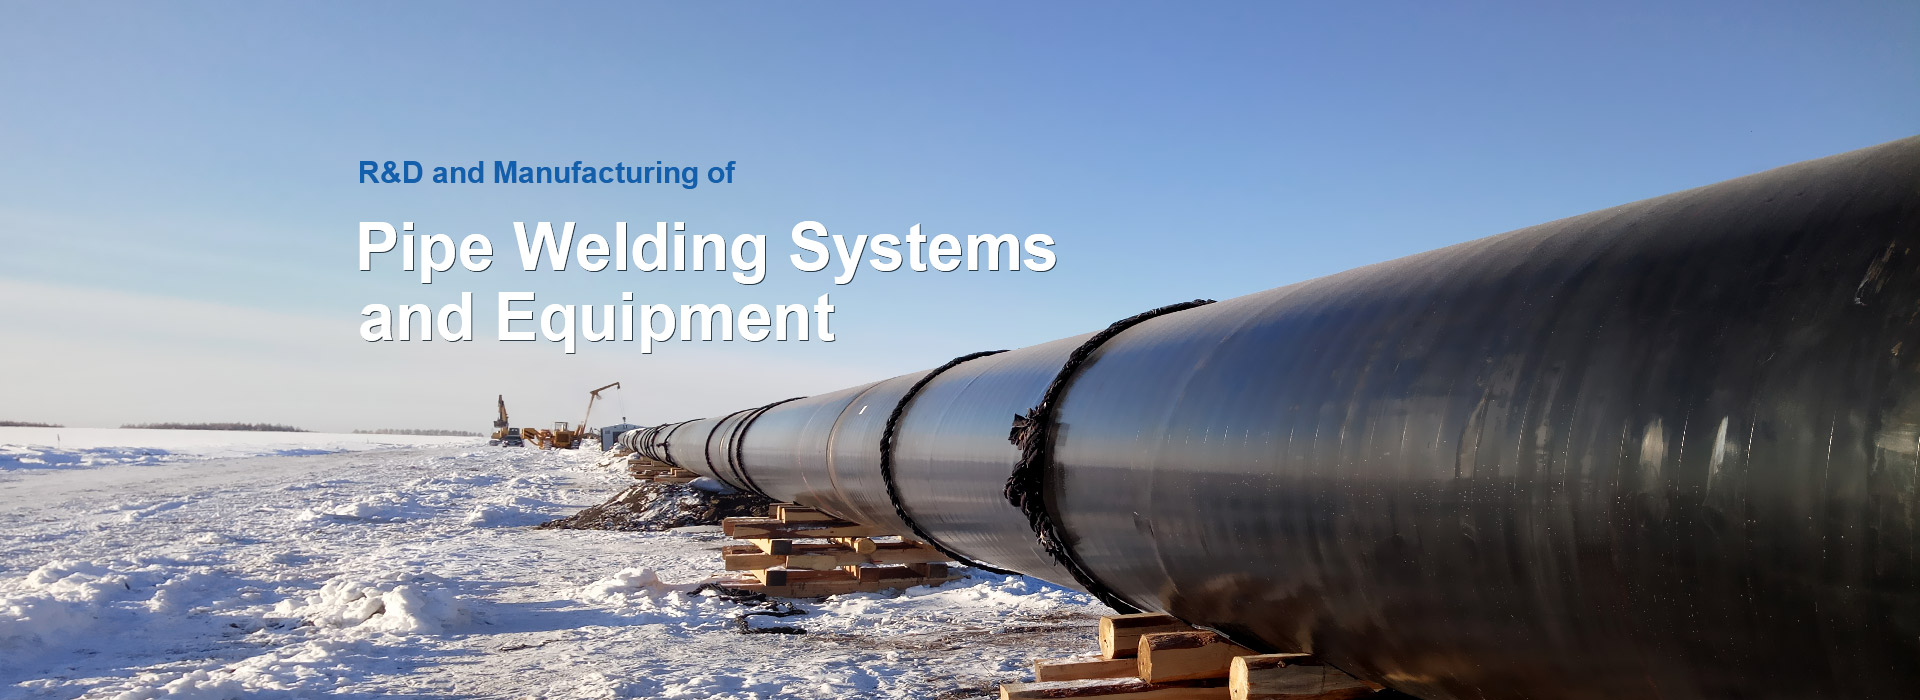 R&D and Manufacturing of Pipe Welding Systems and Equipment